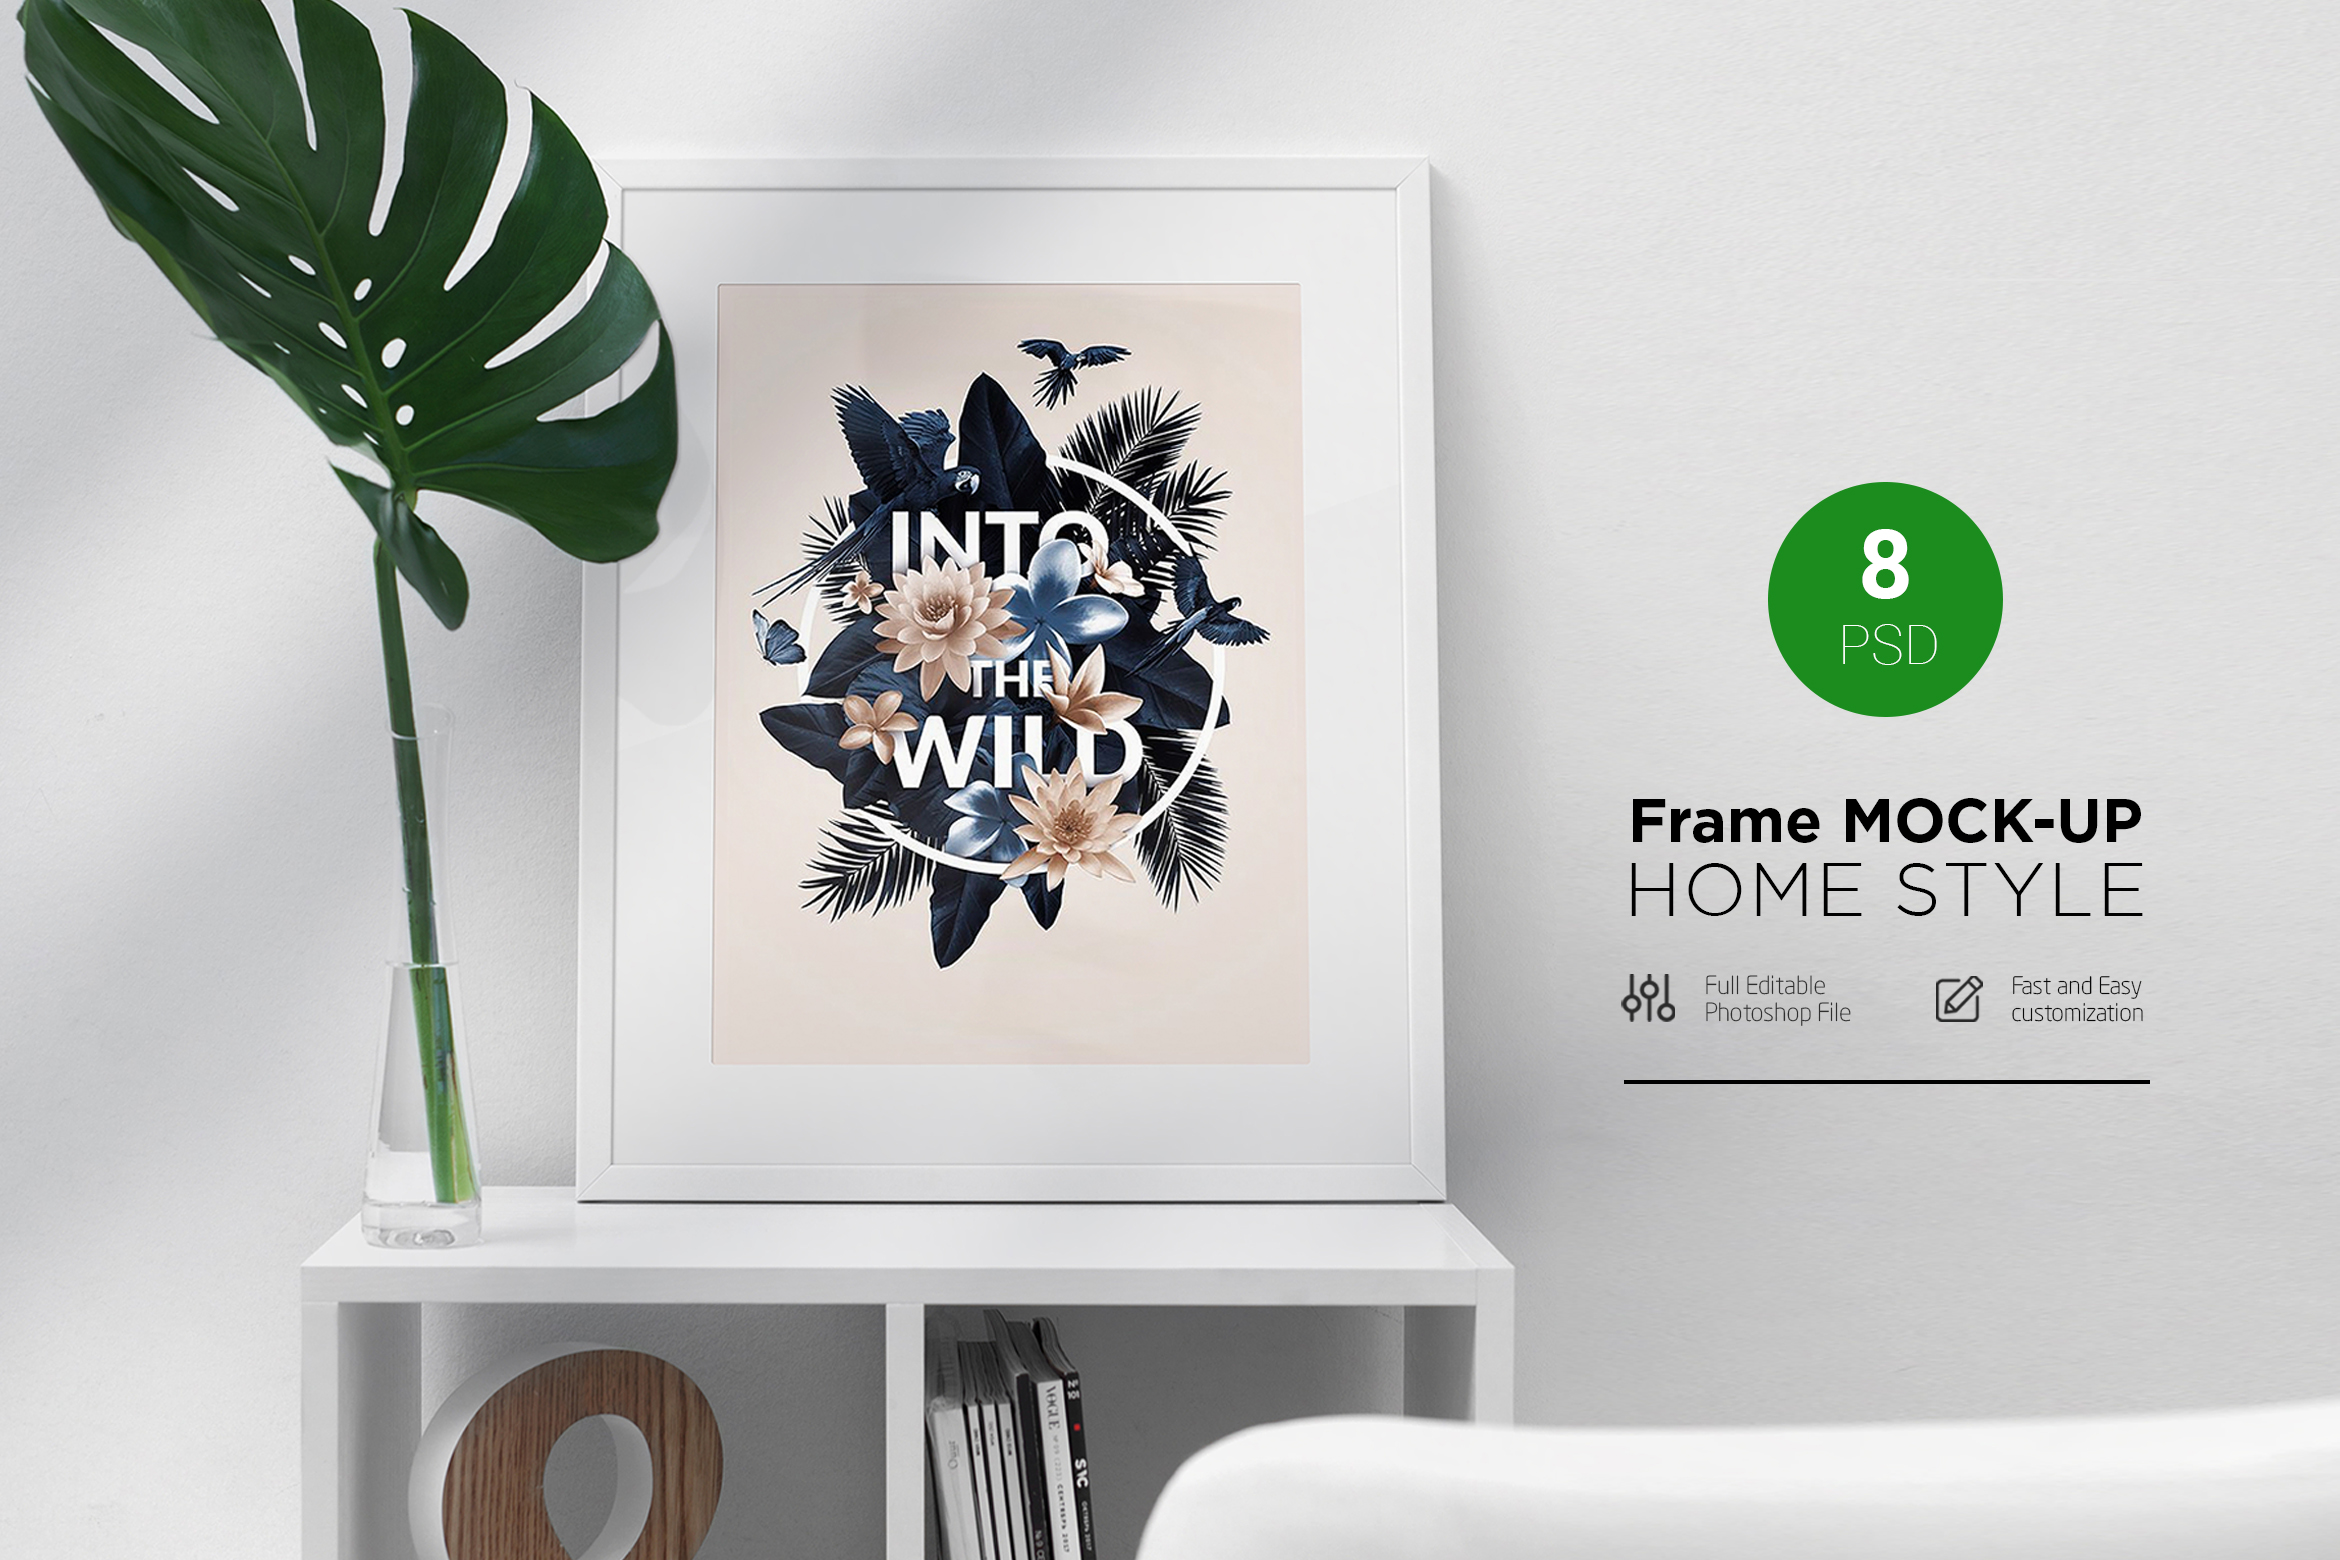 Frame Mock-Up Home Style 8 PSD example image 1